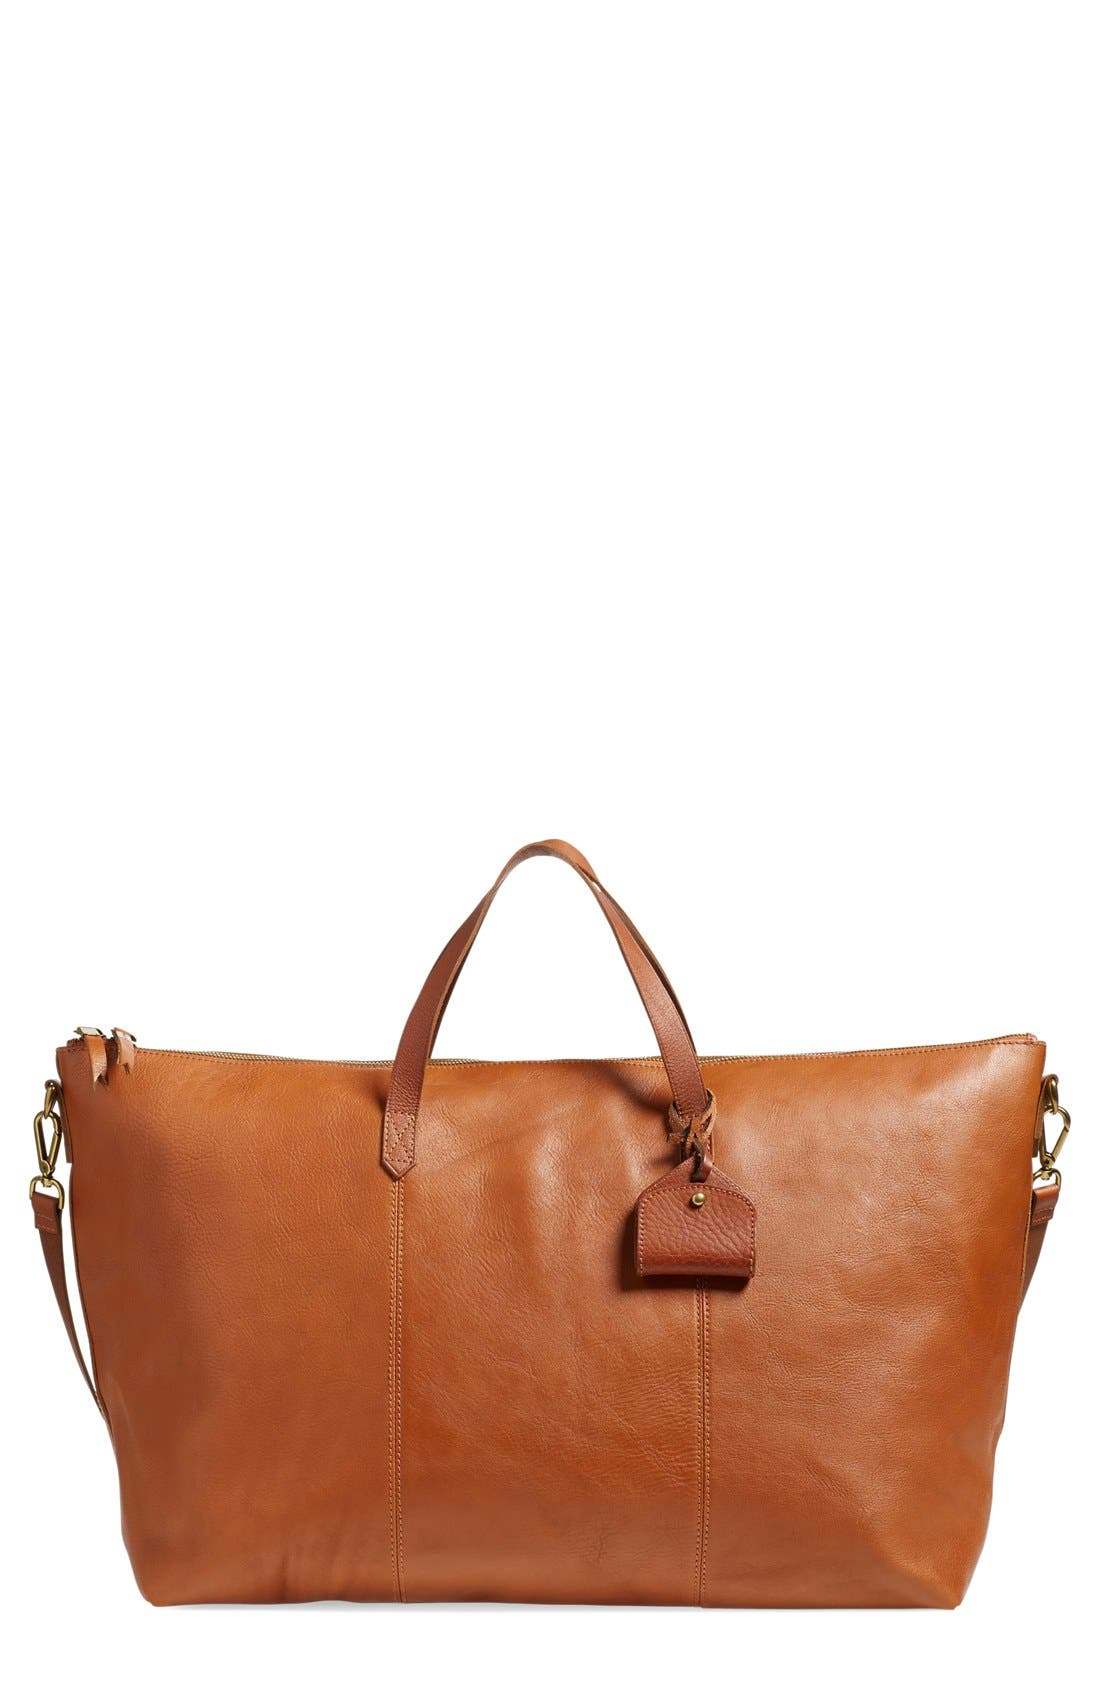 'Transport' Weekend Bag,                             Main thumbnail 1, color,                             ENGLISH SADDLE